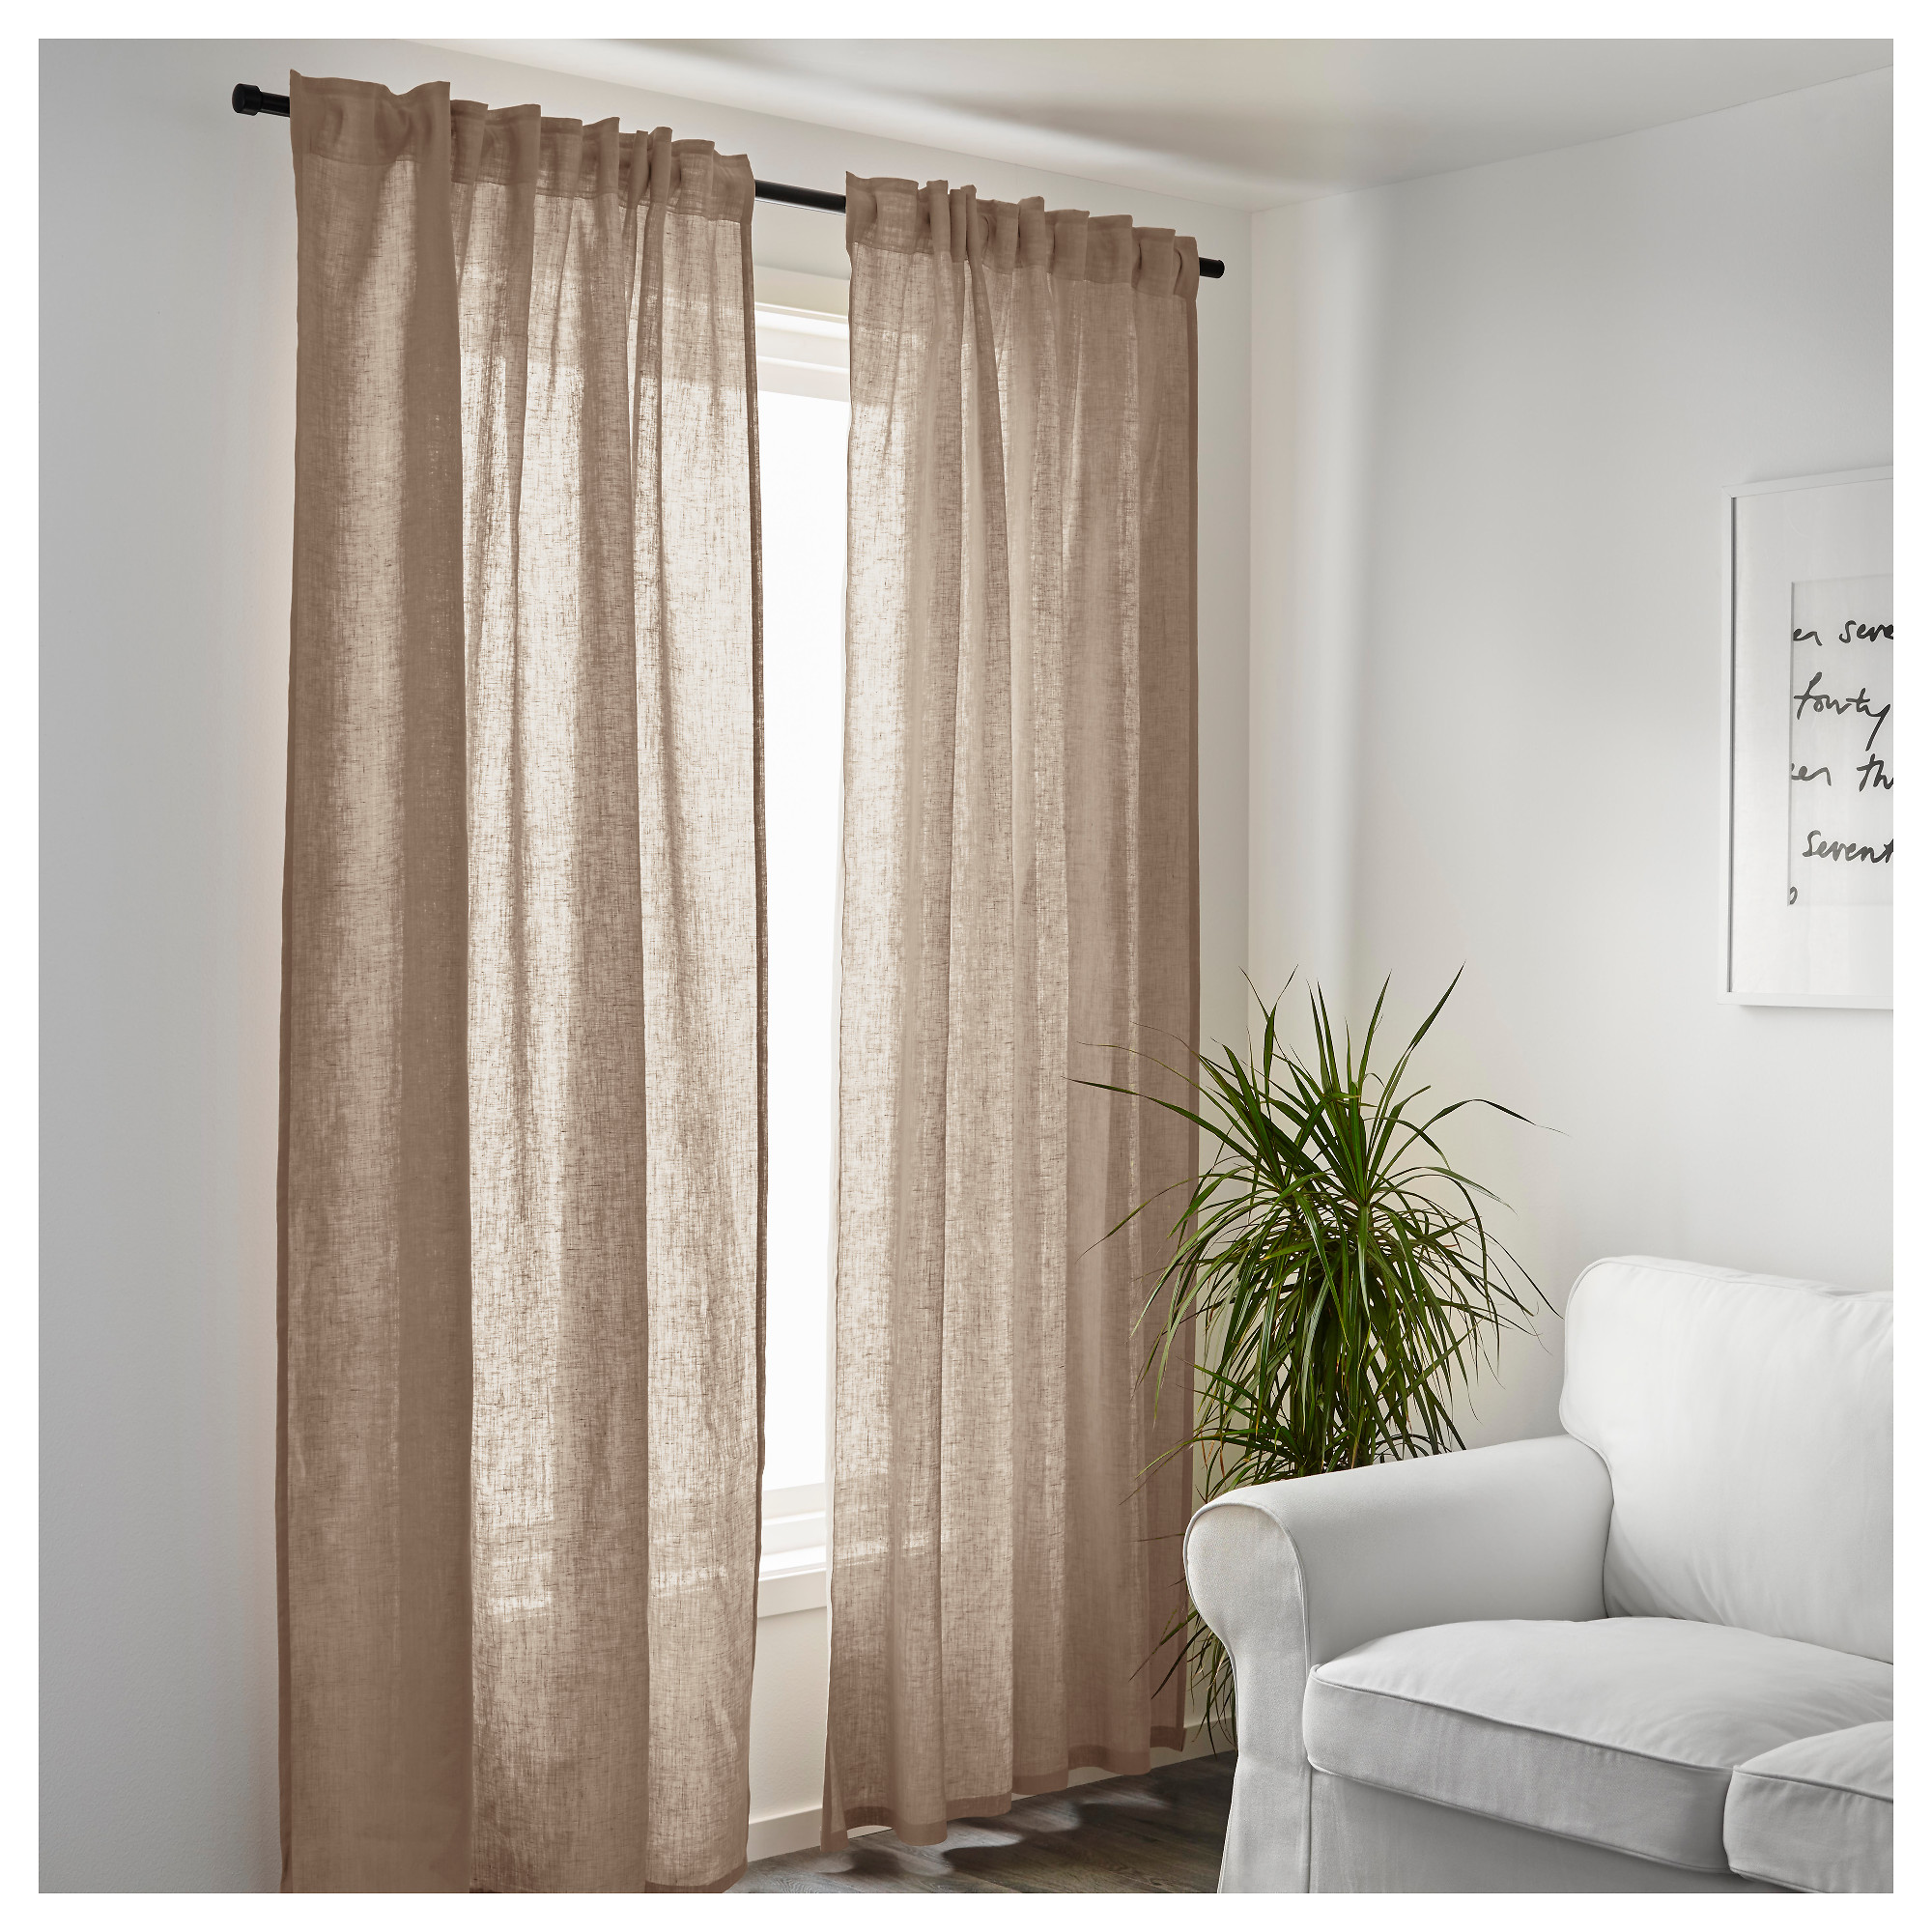 Elegant linen curtains aina curtains, 1 pair - ikea hxaxmlm